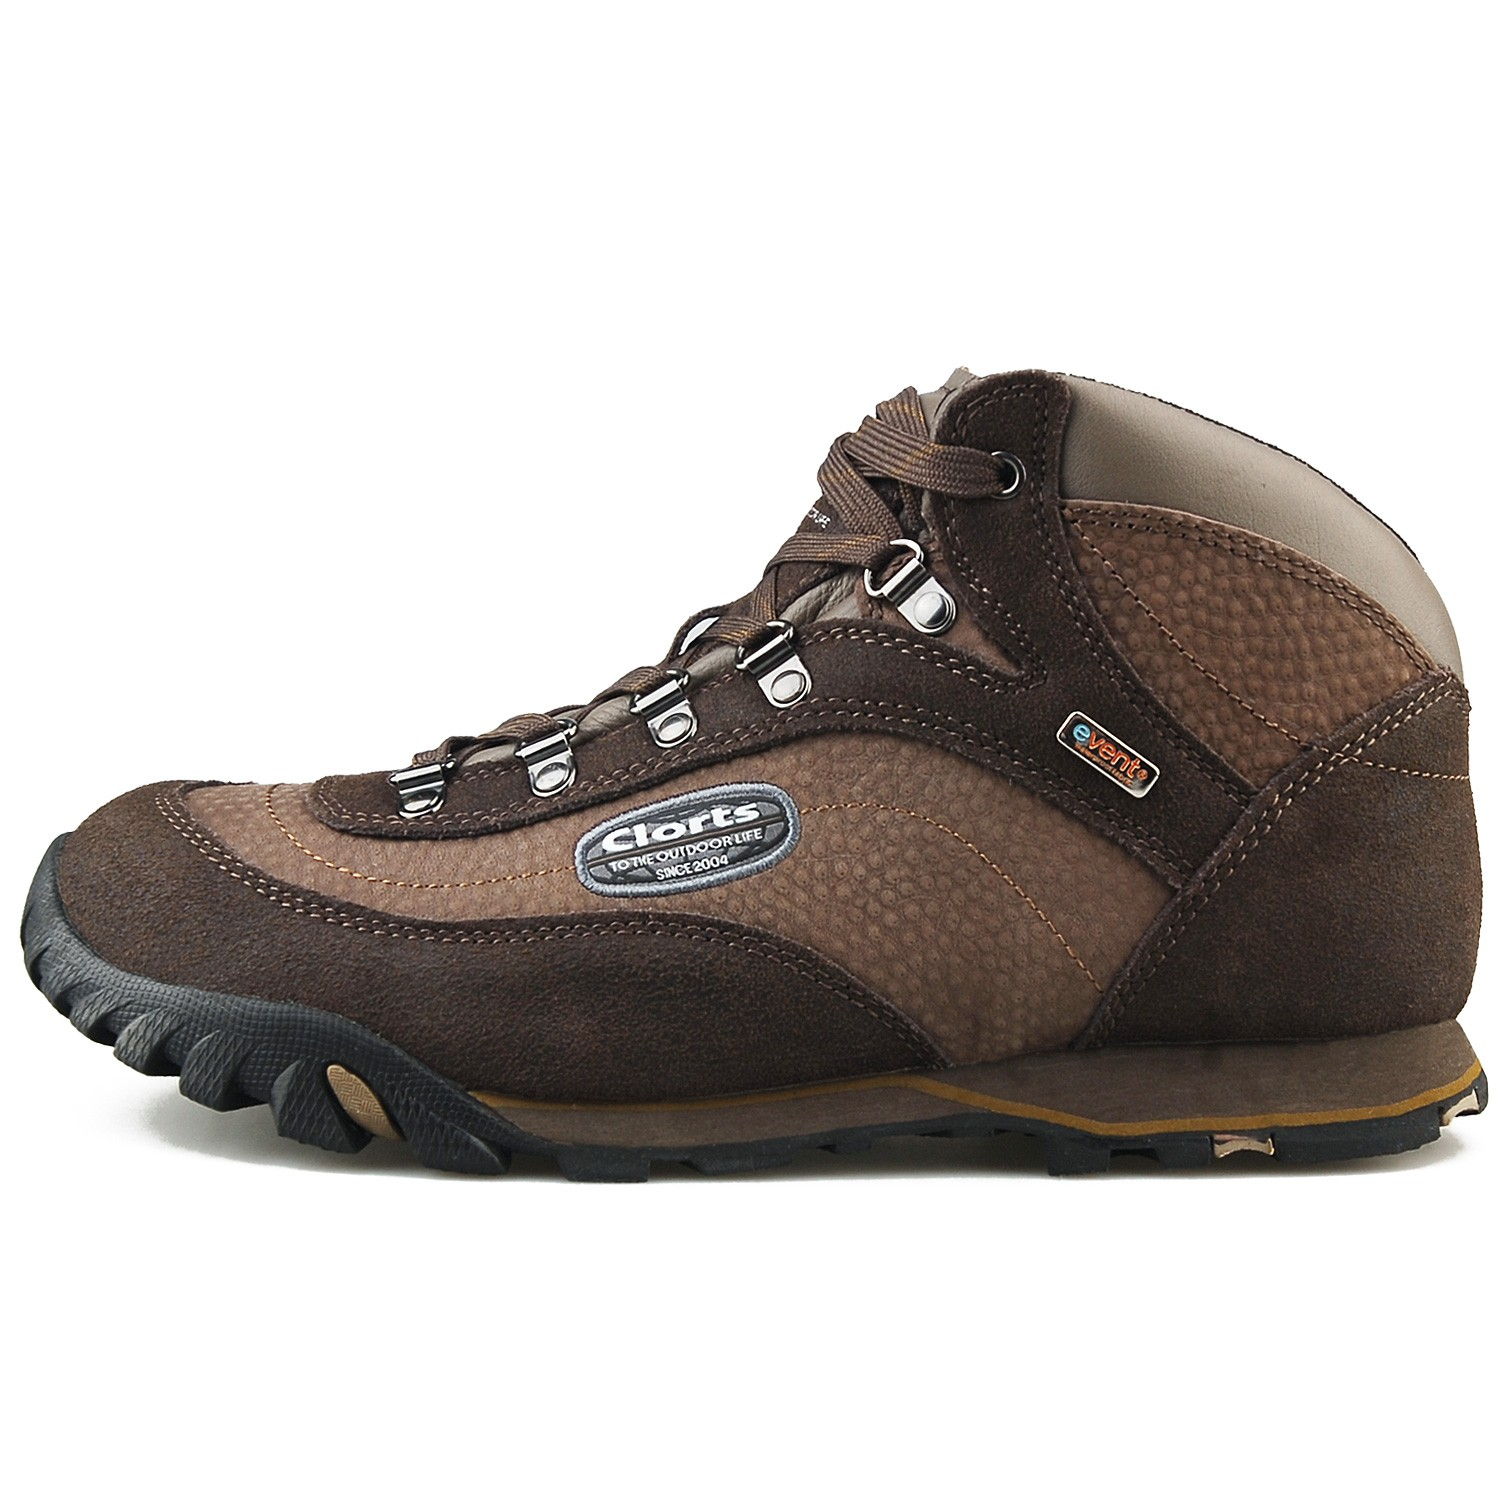 Mens Outdoor Hiking Shoes And Boots